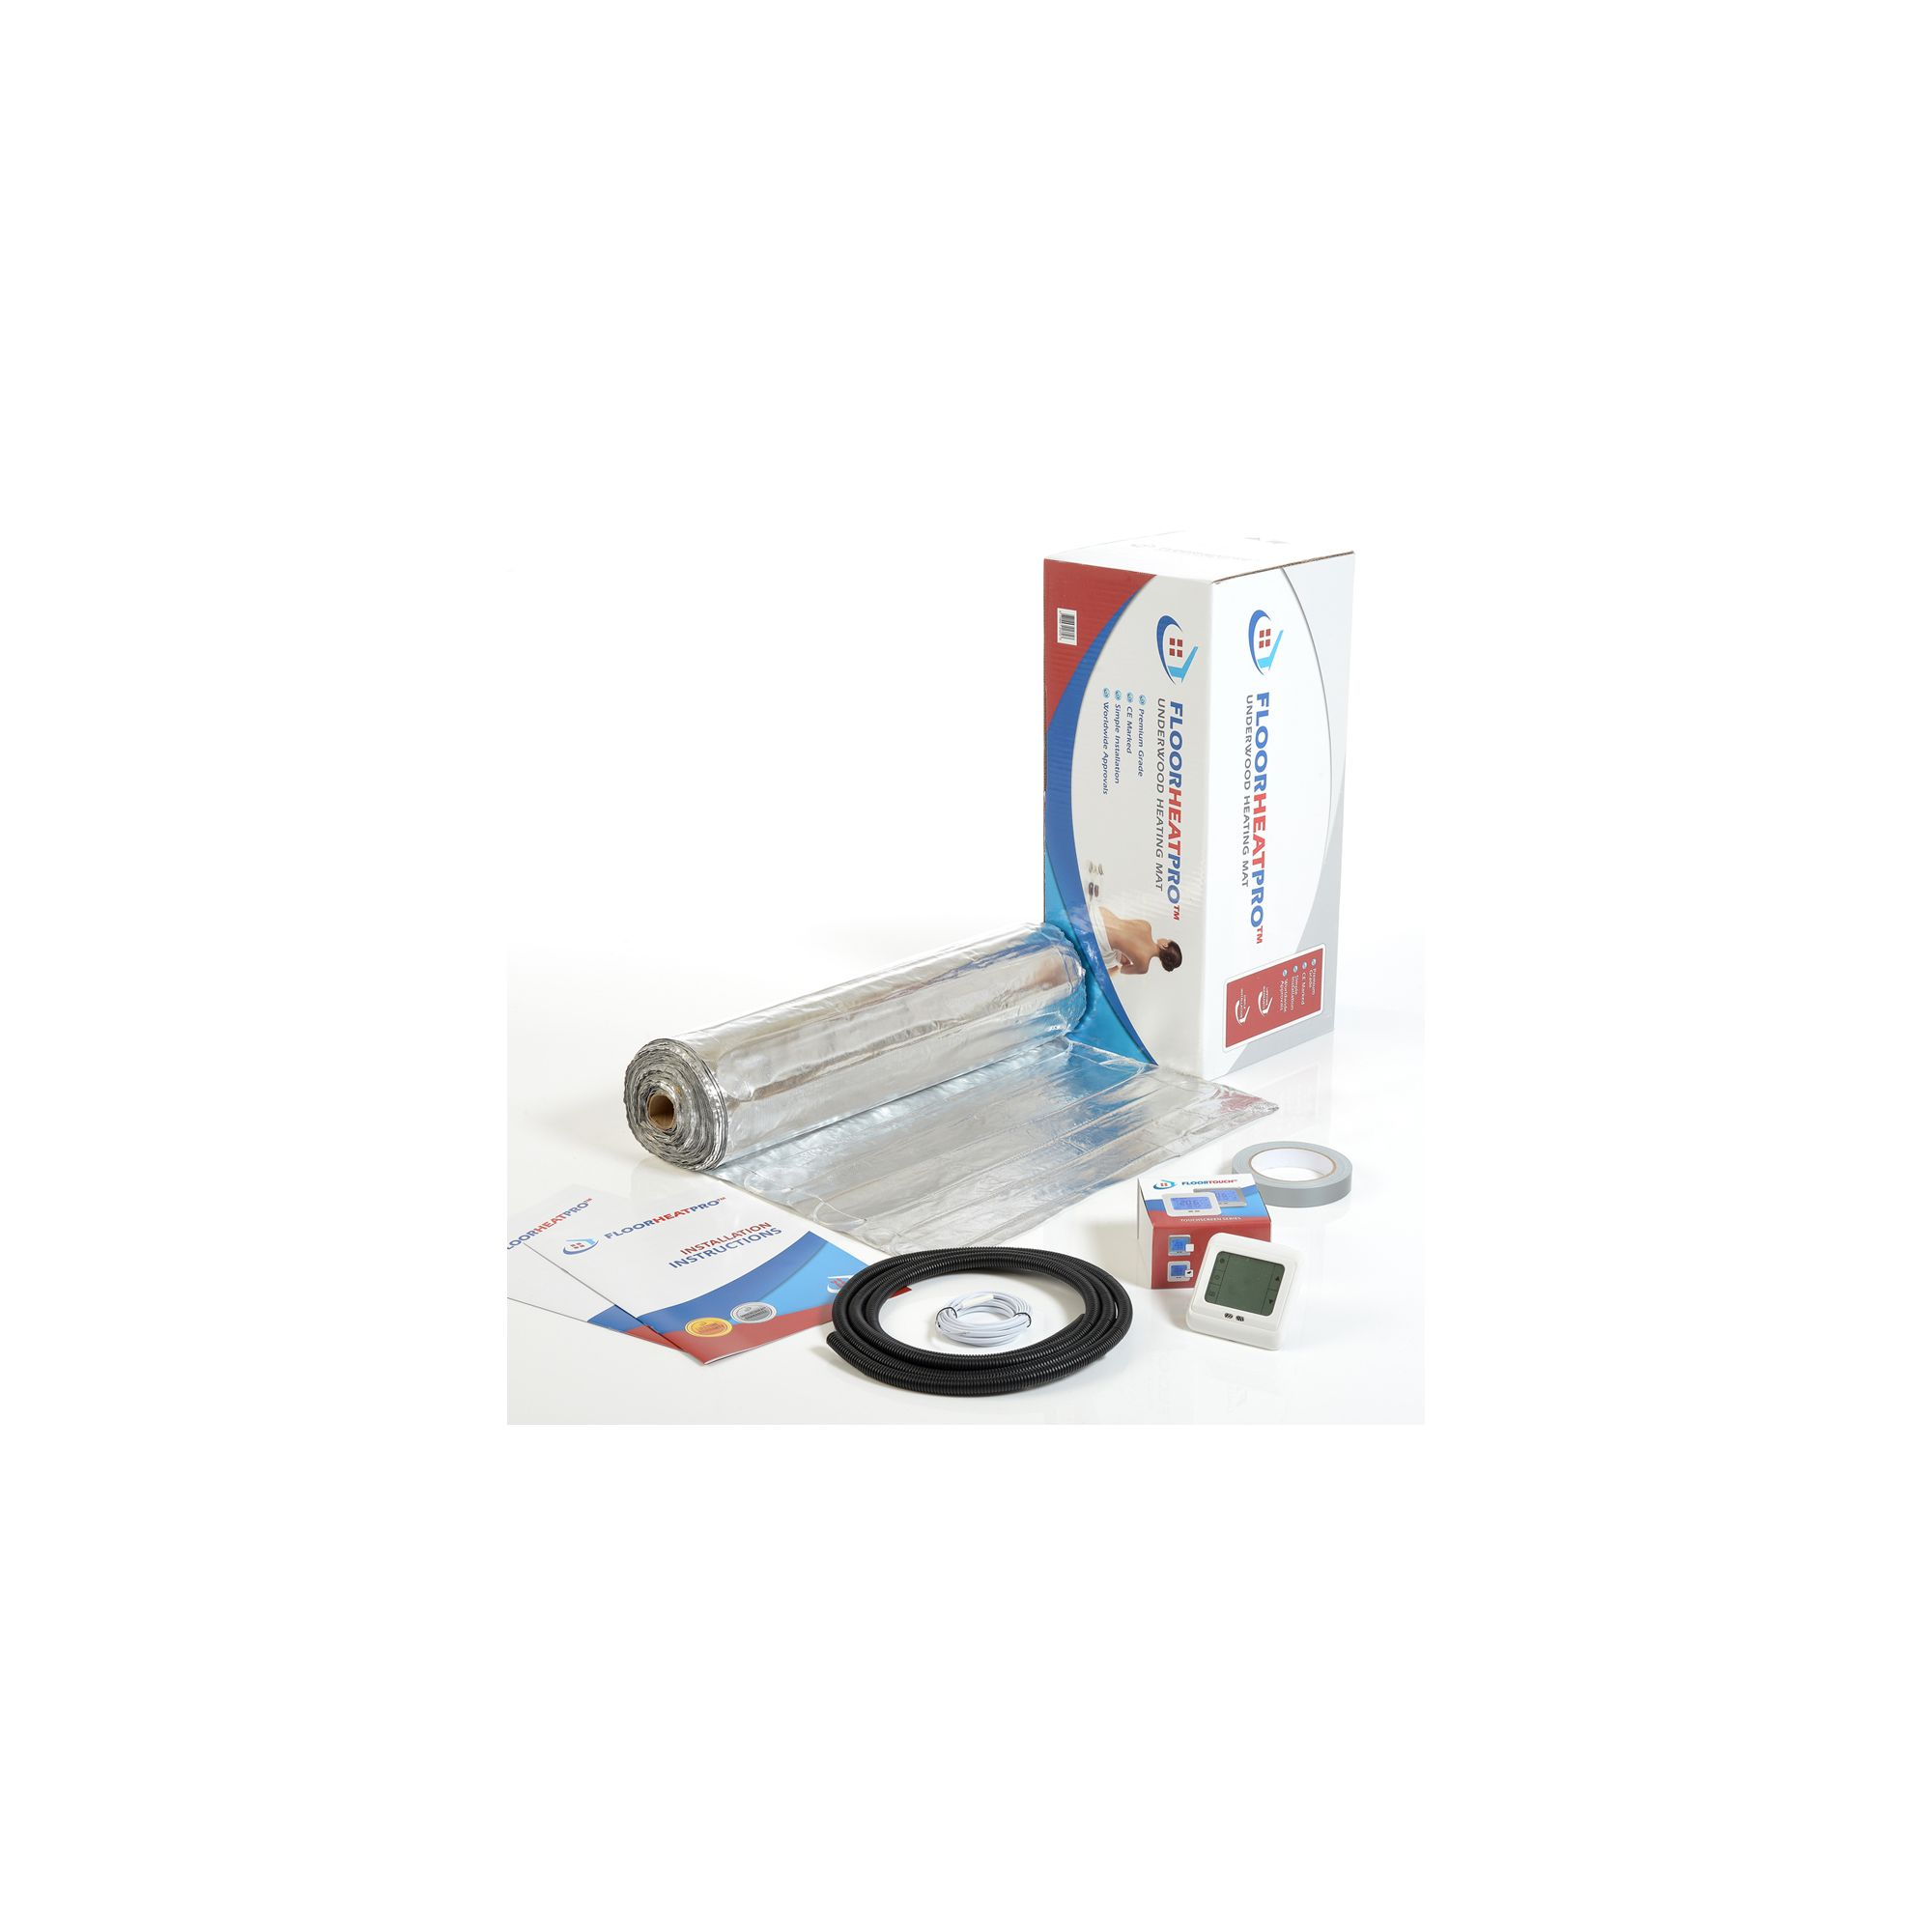 20.0 m2 - Underfloor Electric Heating Kit - Laminate at Tesco Direct